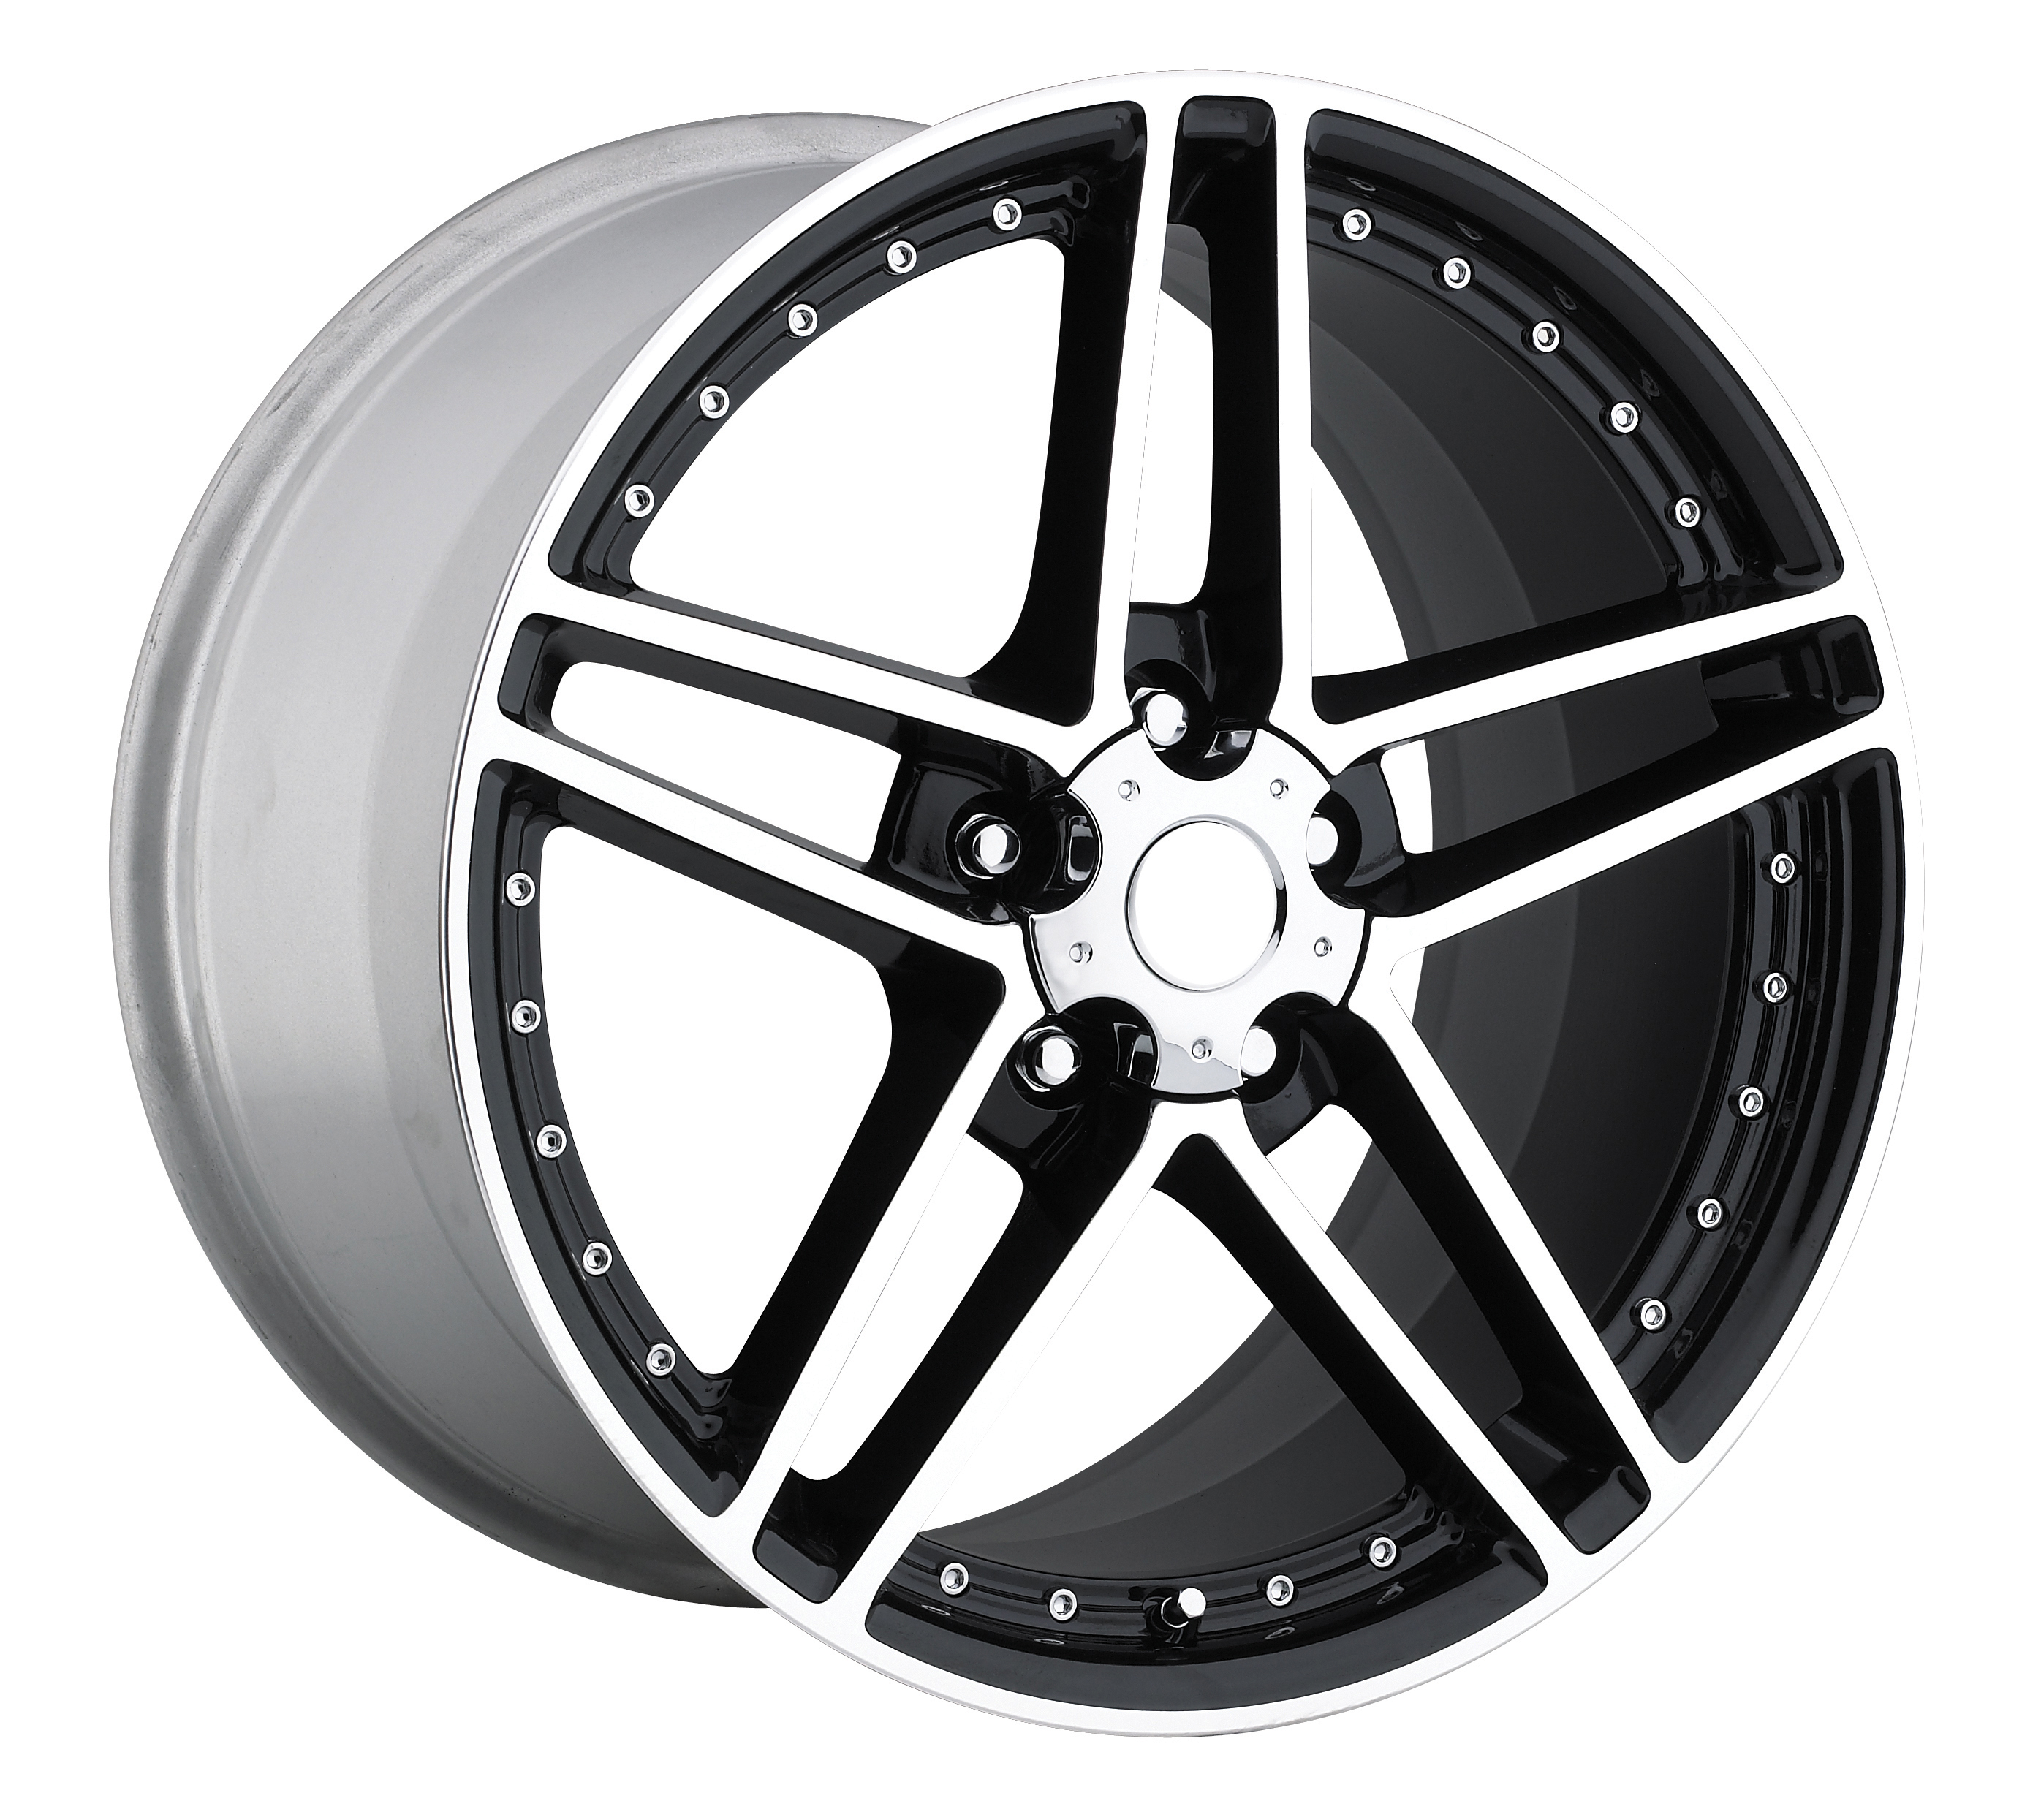 Chevrolet Corvette 1997-2012 17x9.5 5x4.75 +54 - C6 Z06 Motorsport Wheel -  Black Machine Face With Cap